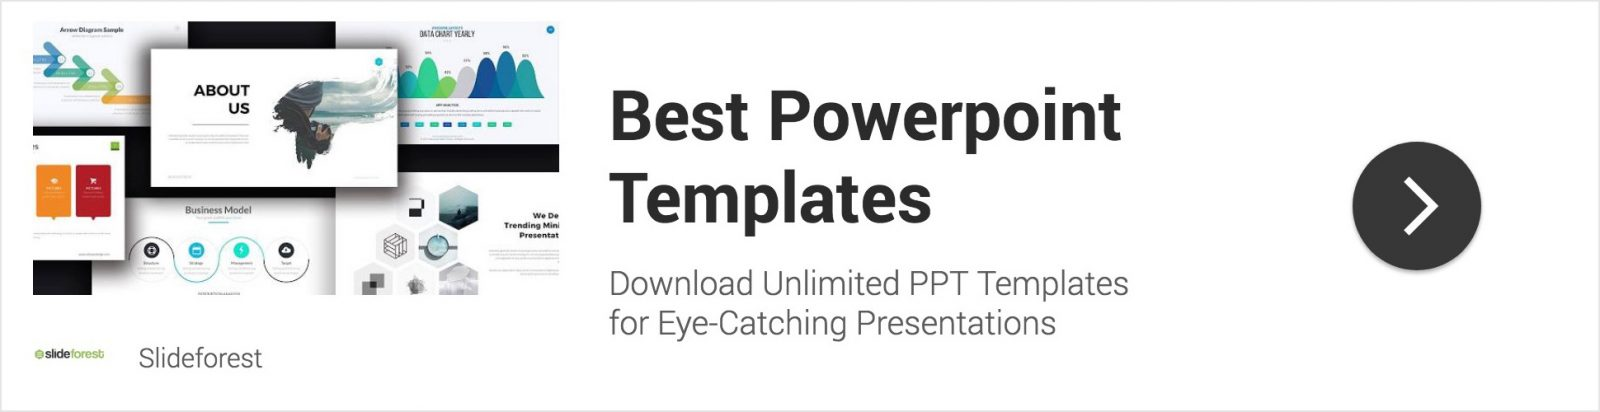 25 free business powerpoint templates for presentations business powerpoint templates wajeb Gallery